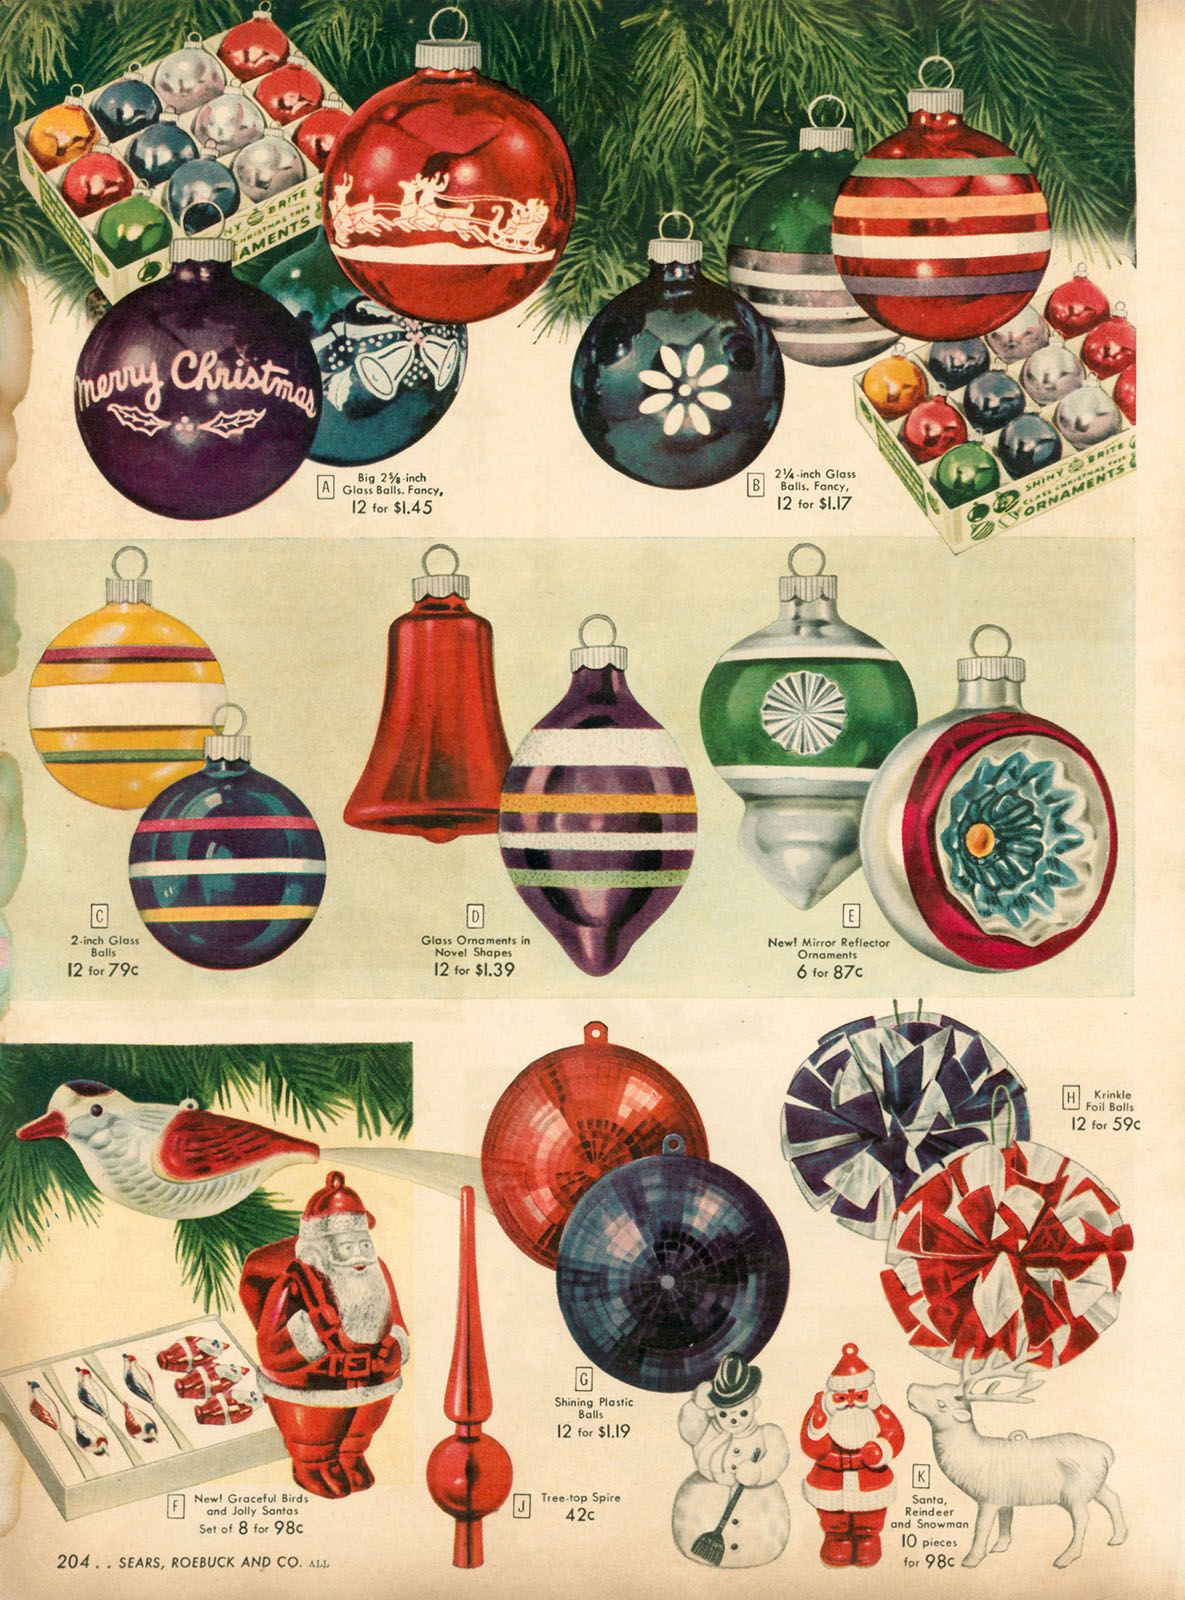 1948-xx-xx Sears Christmas Catalog P204 | Flickr - Photo Sharing